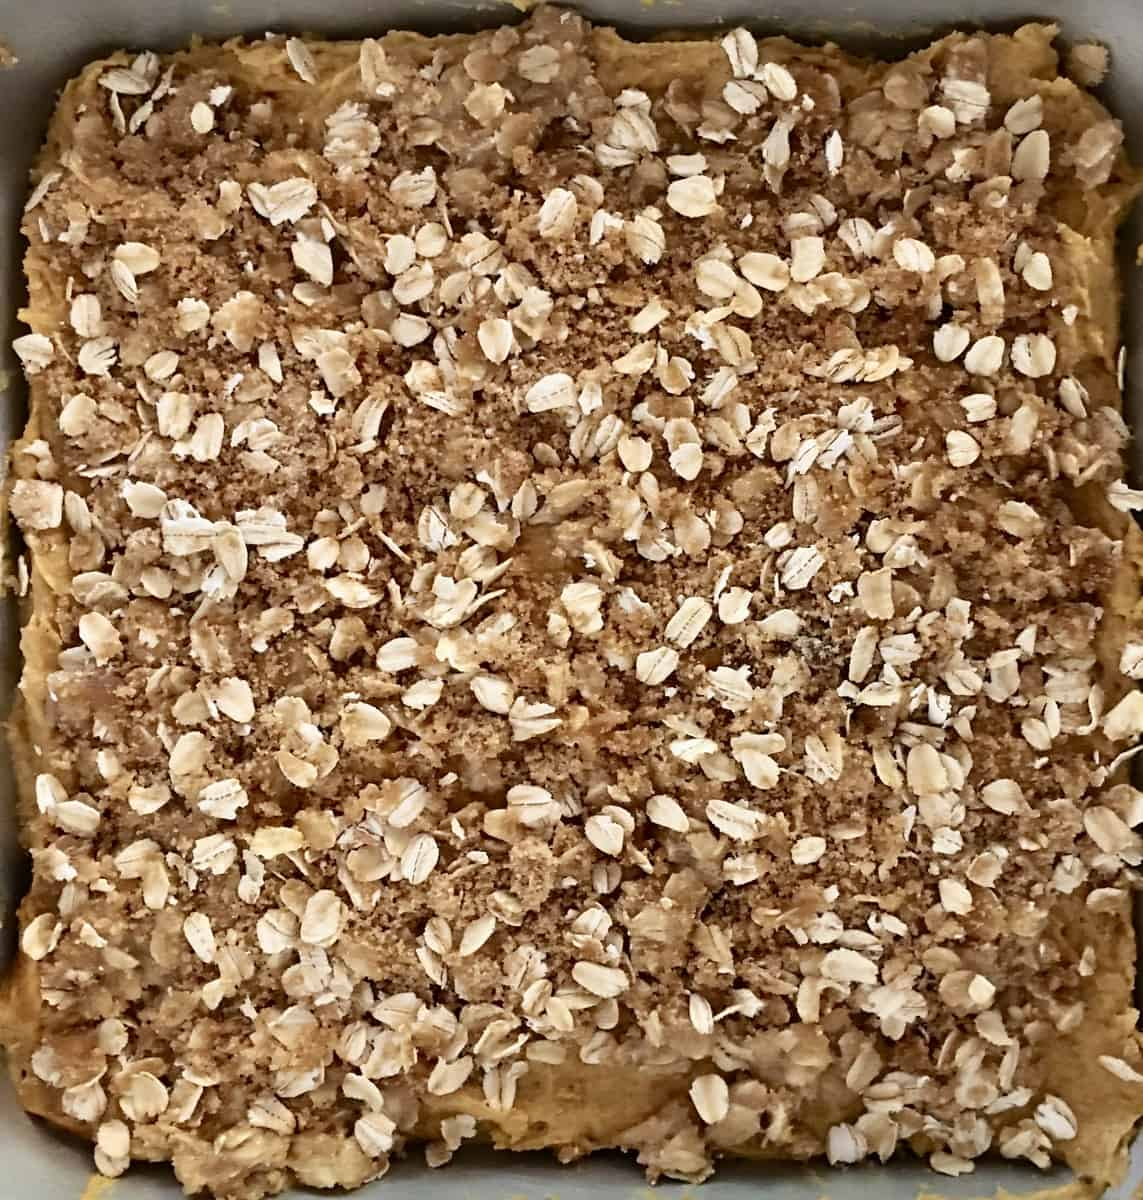 oats, brown sugar, and butter streusel topping for pumpkin streusel coffee cake.